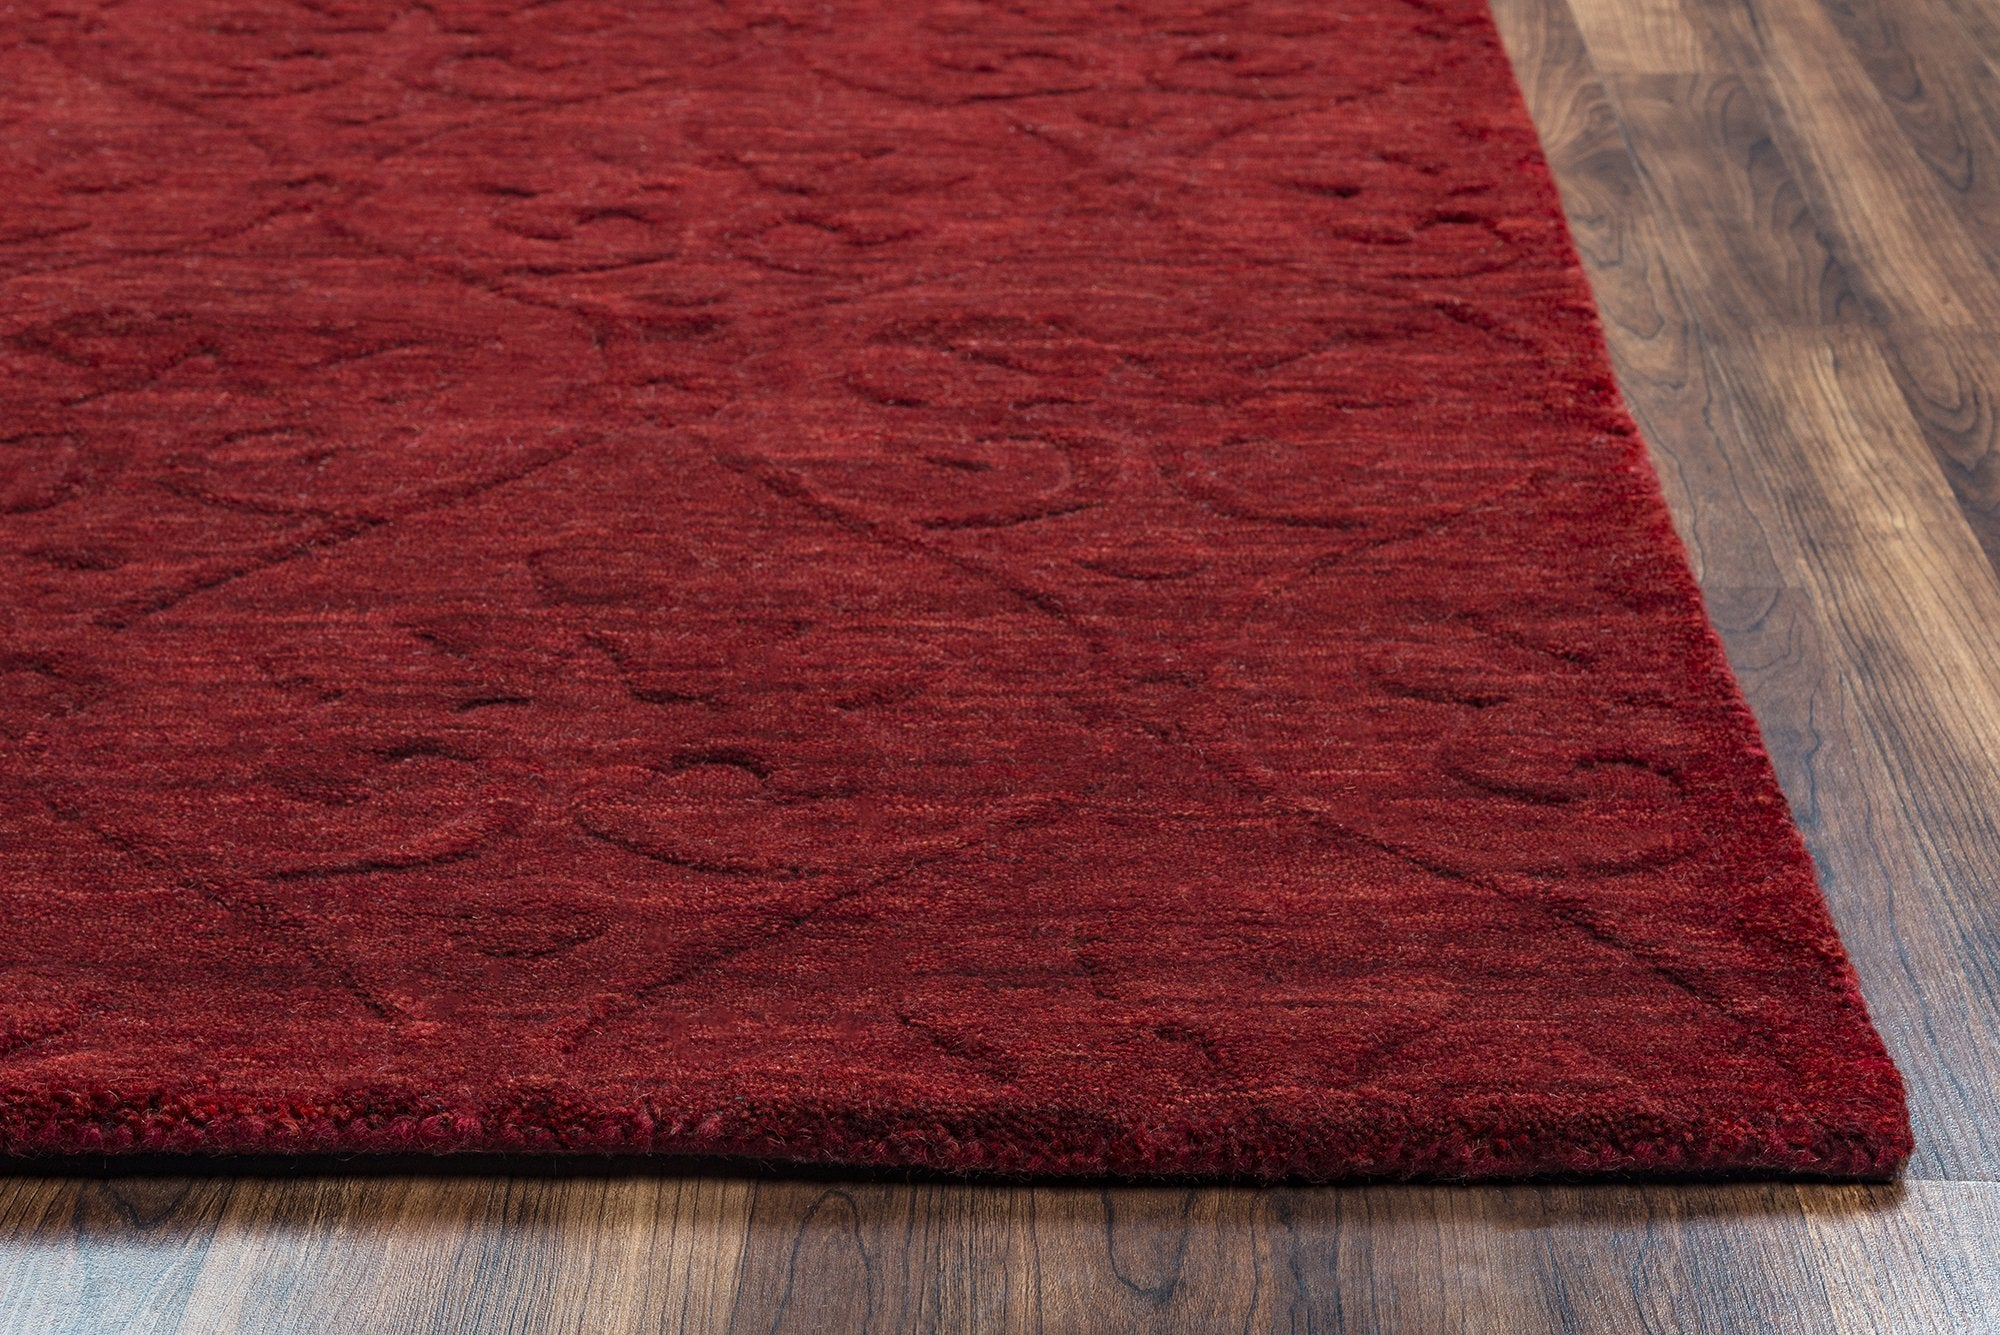 Rizzy Home Technique Tc8268 Burgundy Solid Area Rug